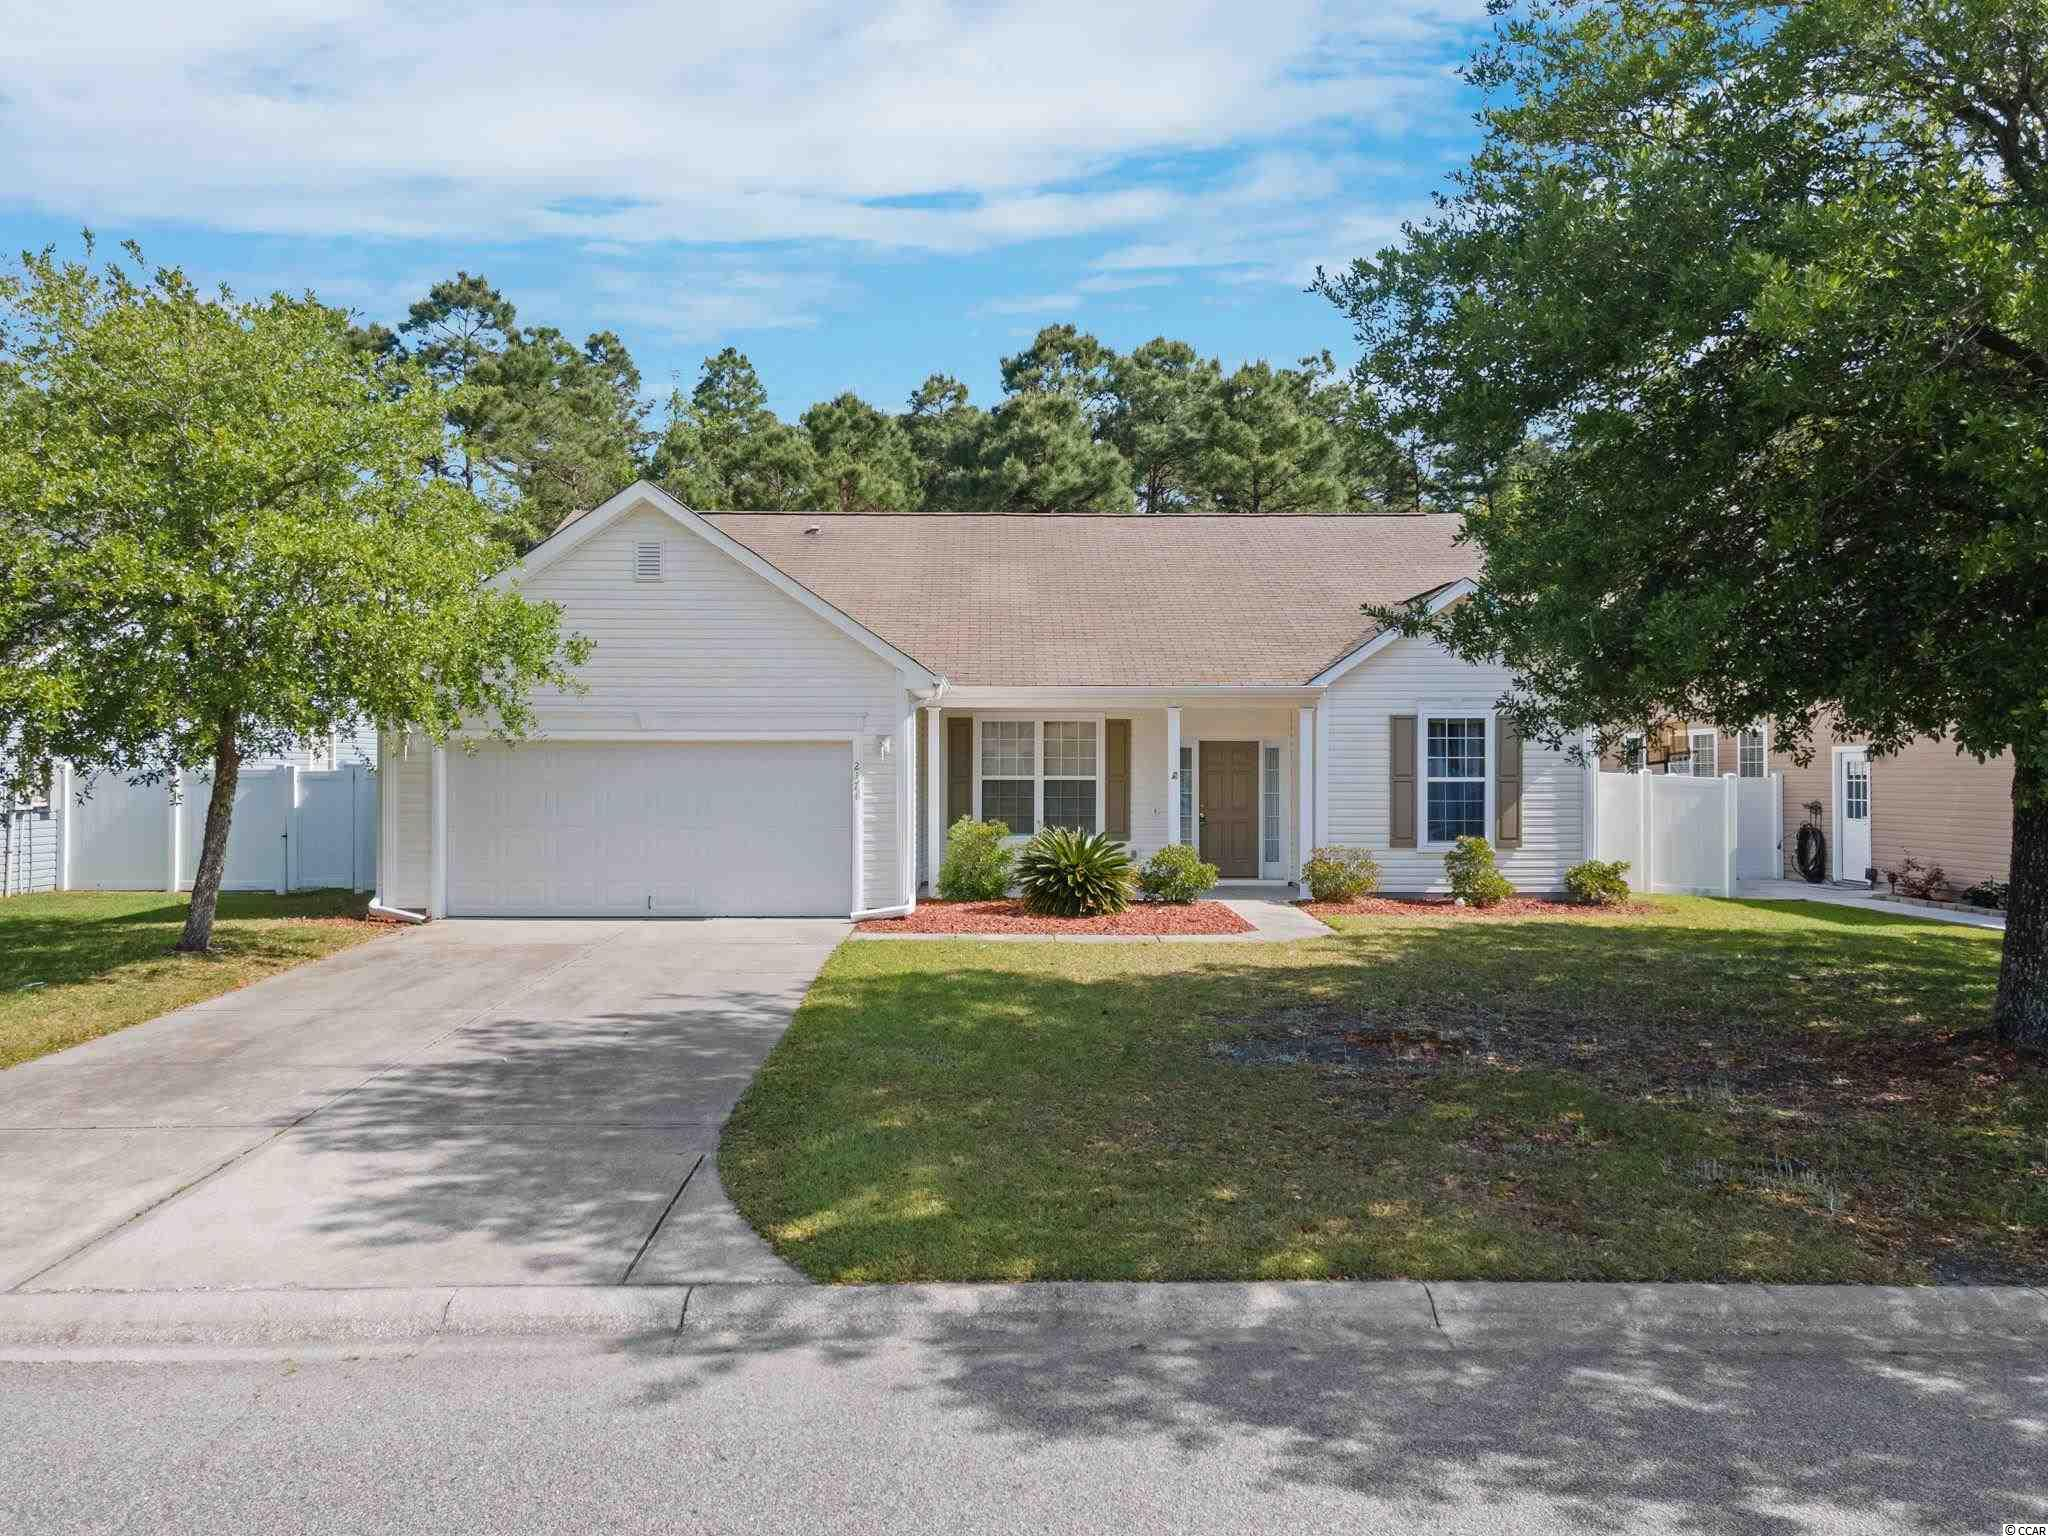 4BR-2BA home in Avalon of Carolina Forest! Great curb appeal! The open floor is bright and airy with a lot of natural light. Two patios, one is located off the living room and one off the breakfast nook. The large backyard has a nature view. HVAC replaced in 2015. Avalon is conveniently located close to many major roadways, hospitals, restaurants, shopping and entertainment but in a quiet residential setting. Big Plus is Avalon is located in an award winning school district!